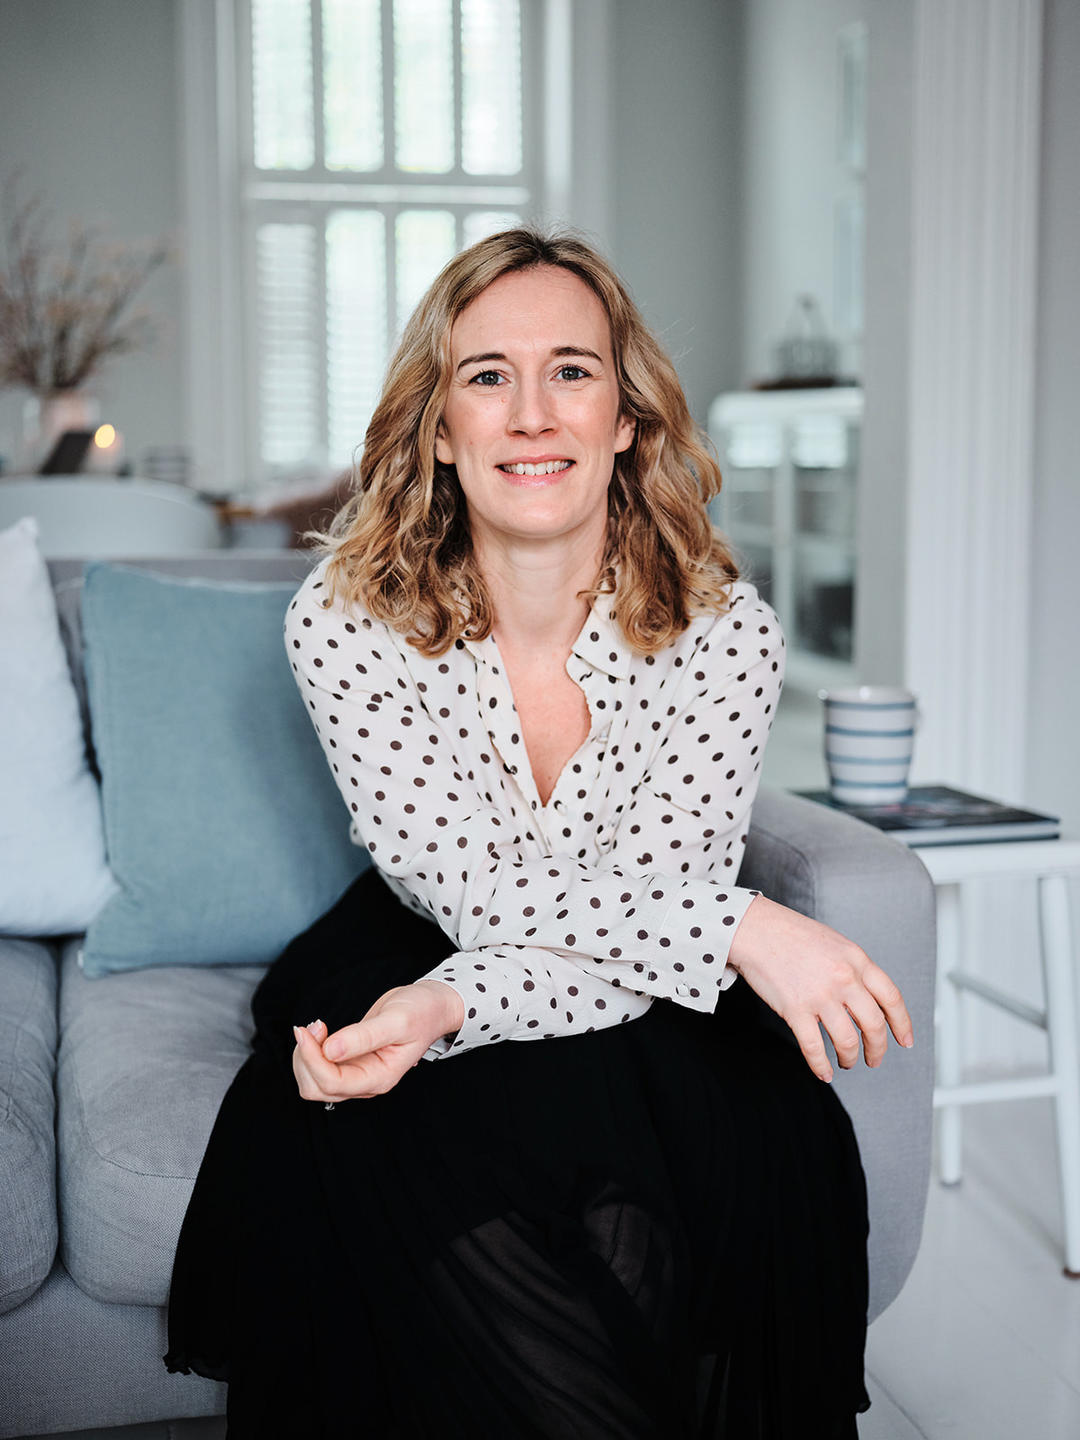 Picture of Zoe Hawkins in a spotted blouse and black skirt, sat in a chair, smiling, with her arms crossed leaning forwards